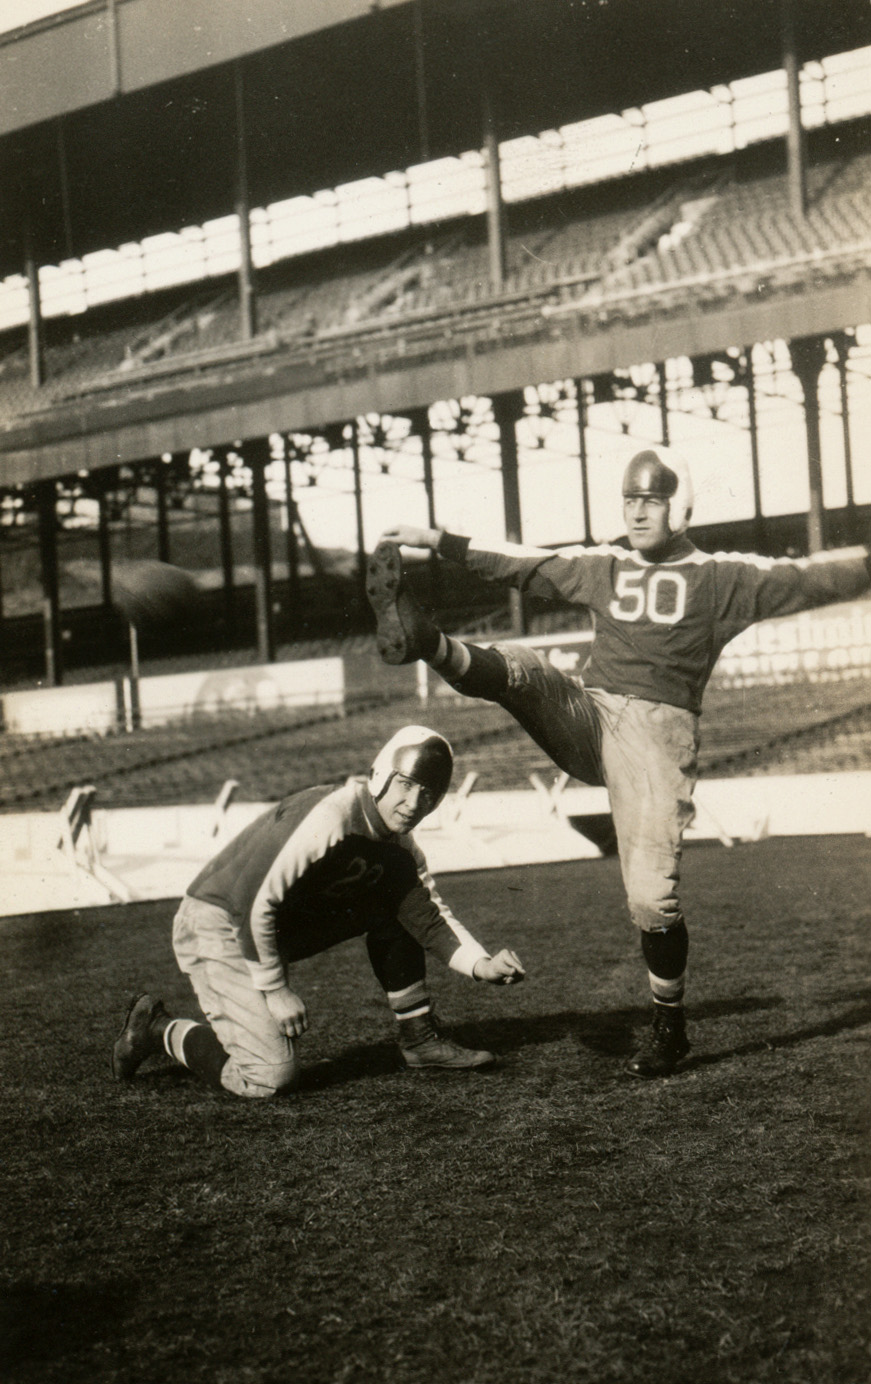 Bo Molenda holding, Ken Strong (50) kicking (1934 New York Giants)